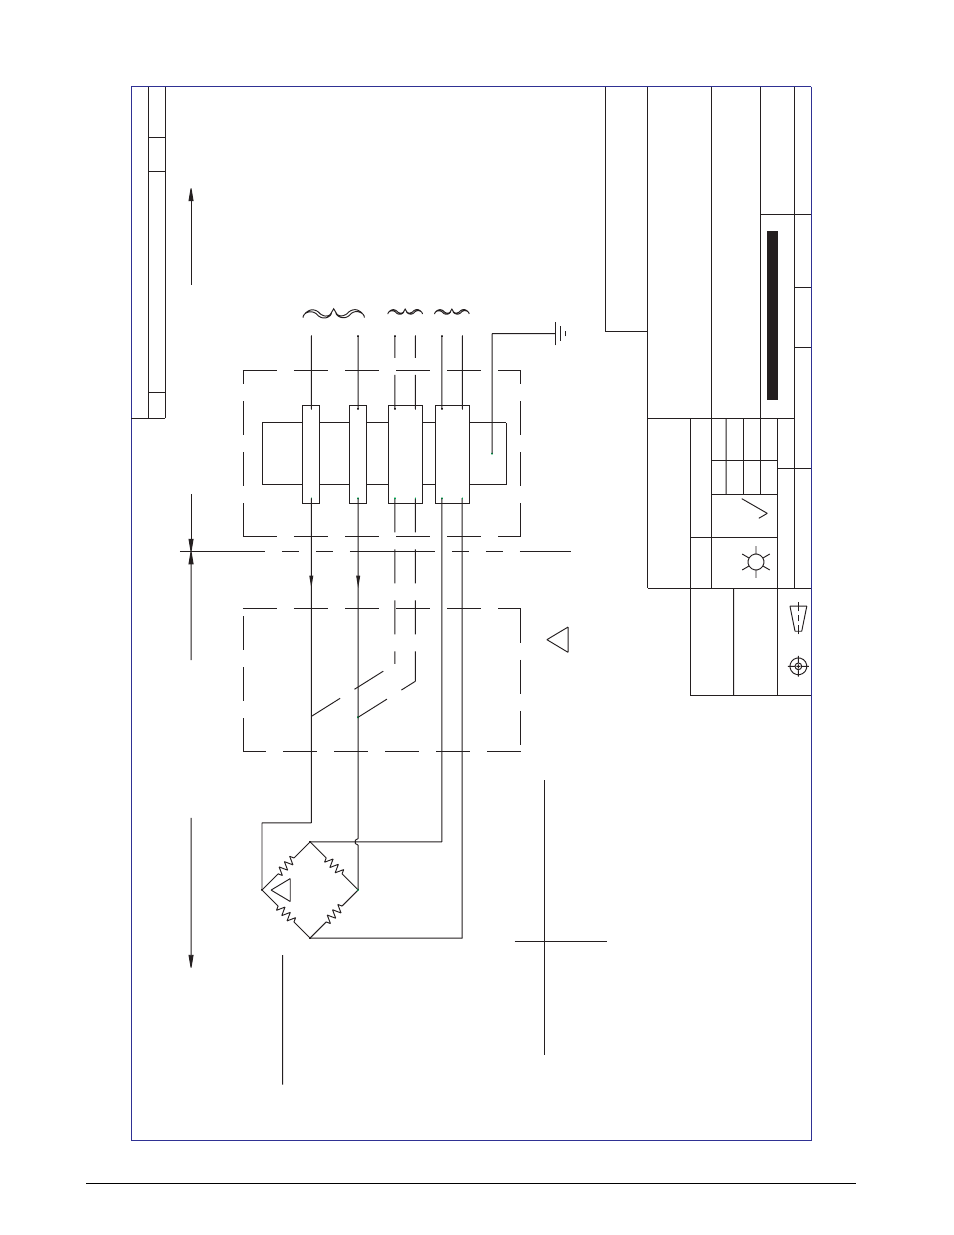 Load Cell Wiring Diagram Solutions Model Cells In Hazardous Areas 38